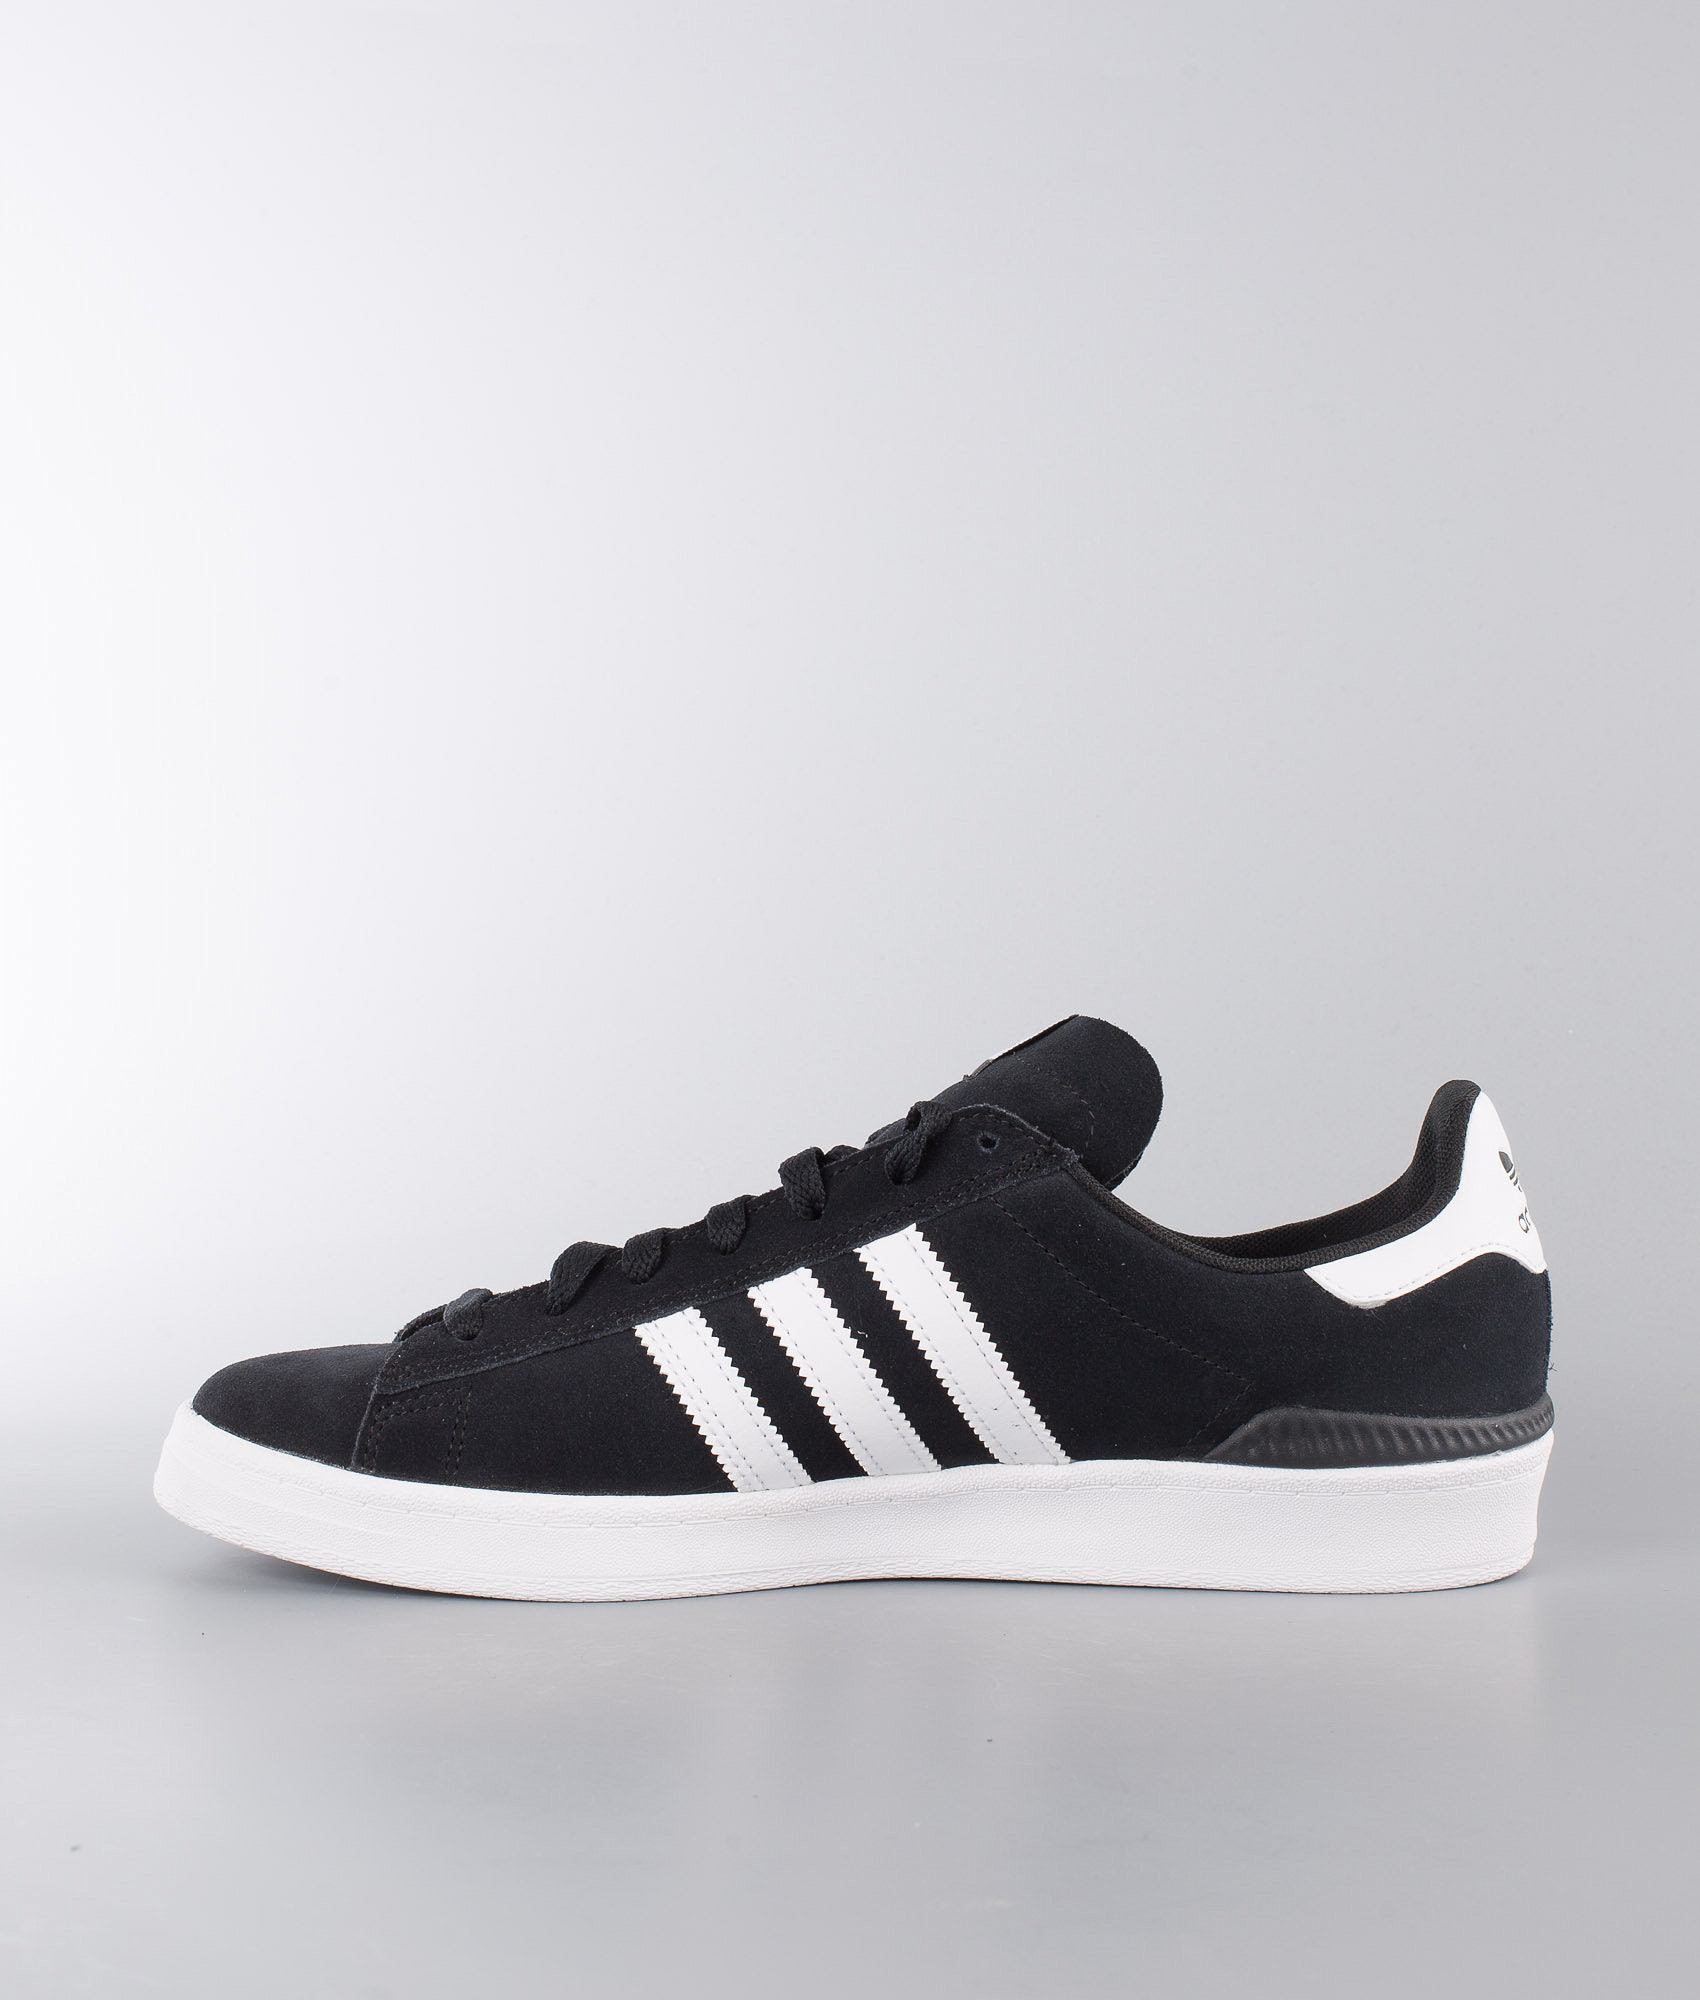 new arrivals 3ac4c 53c69 Adidas Skateboarding Campus Adv Shoes